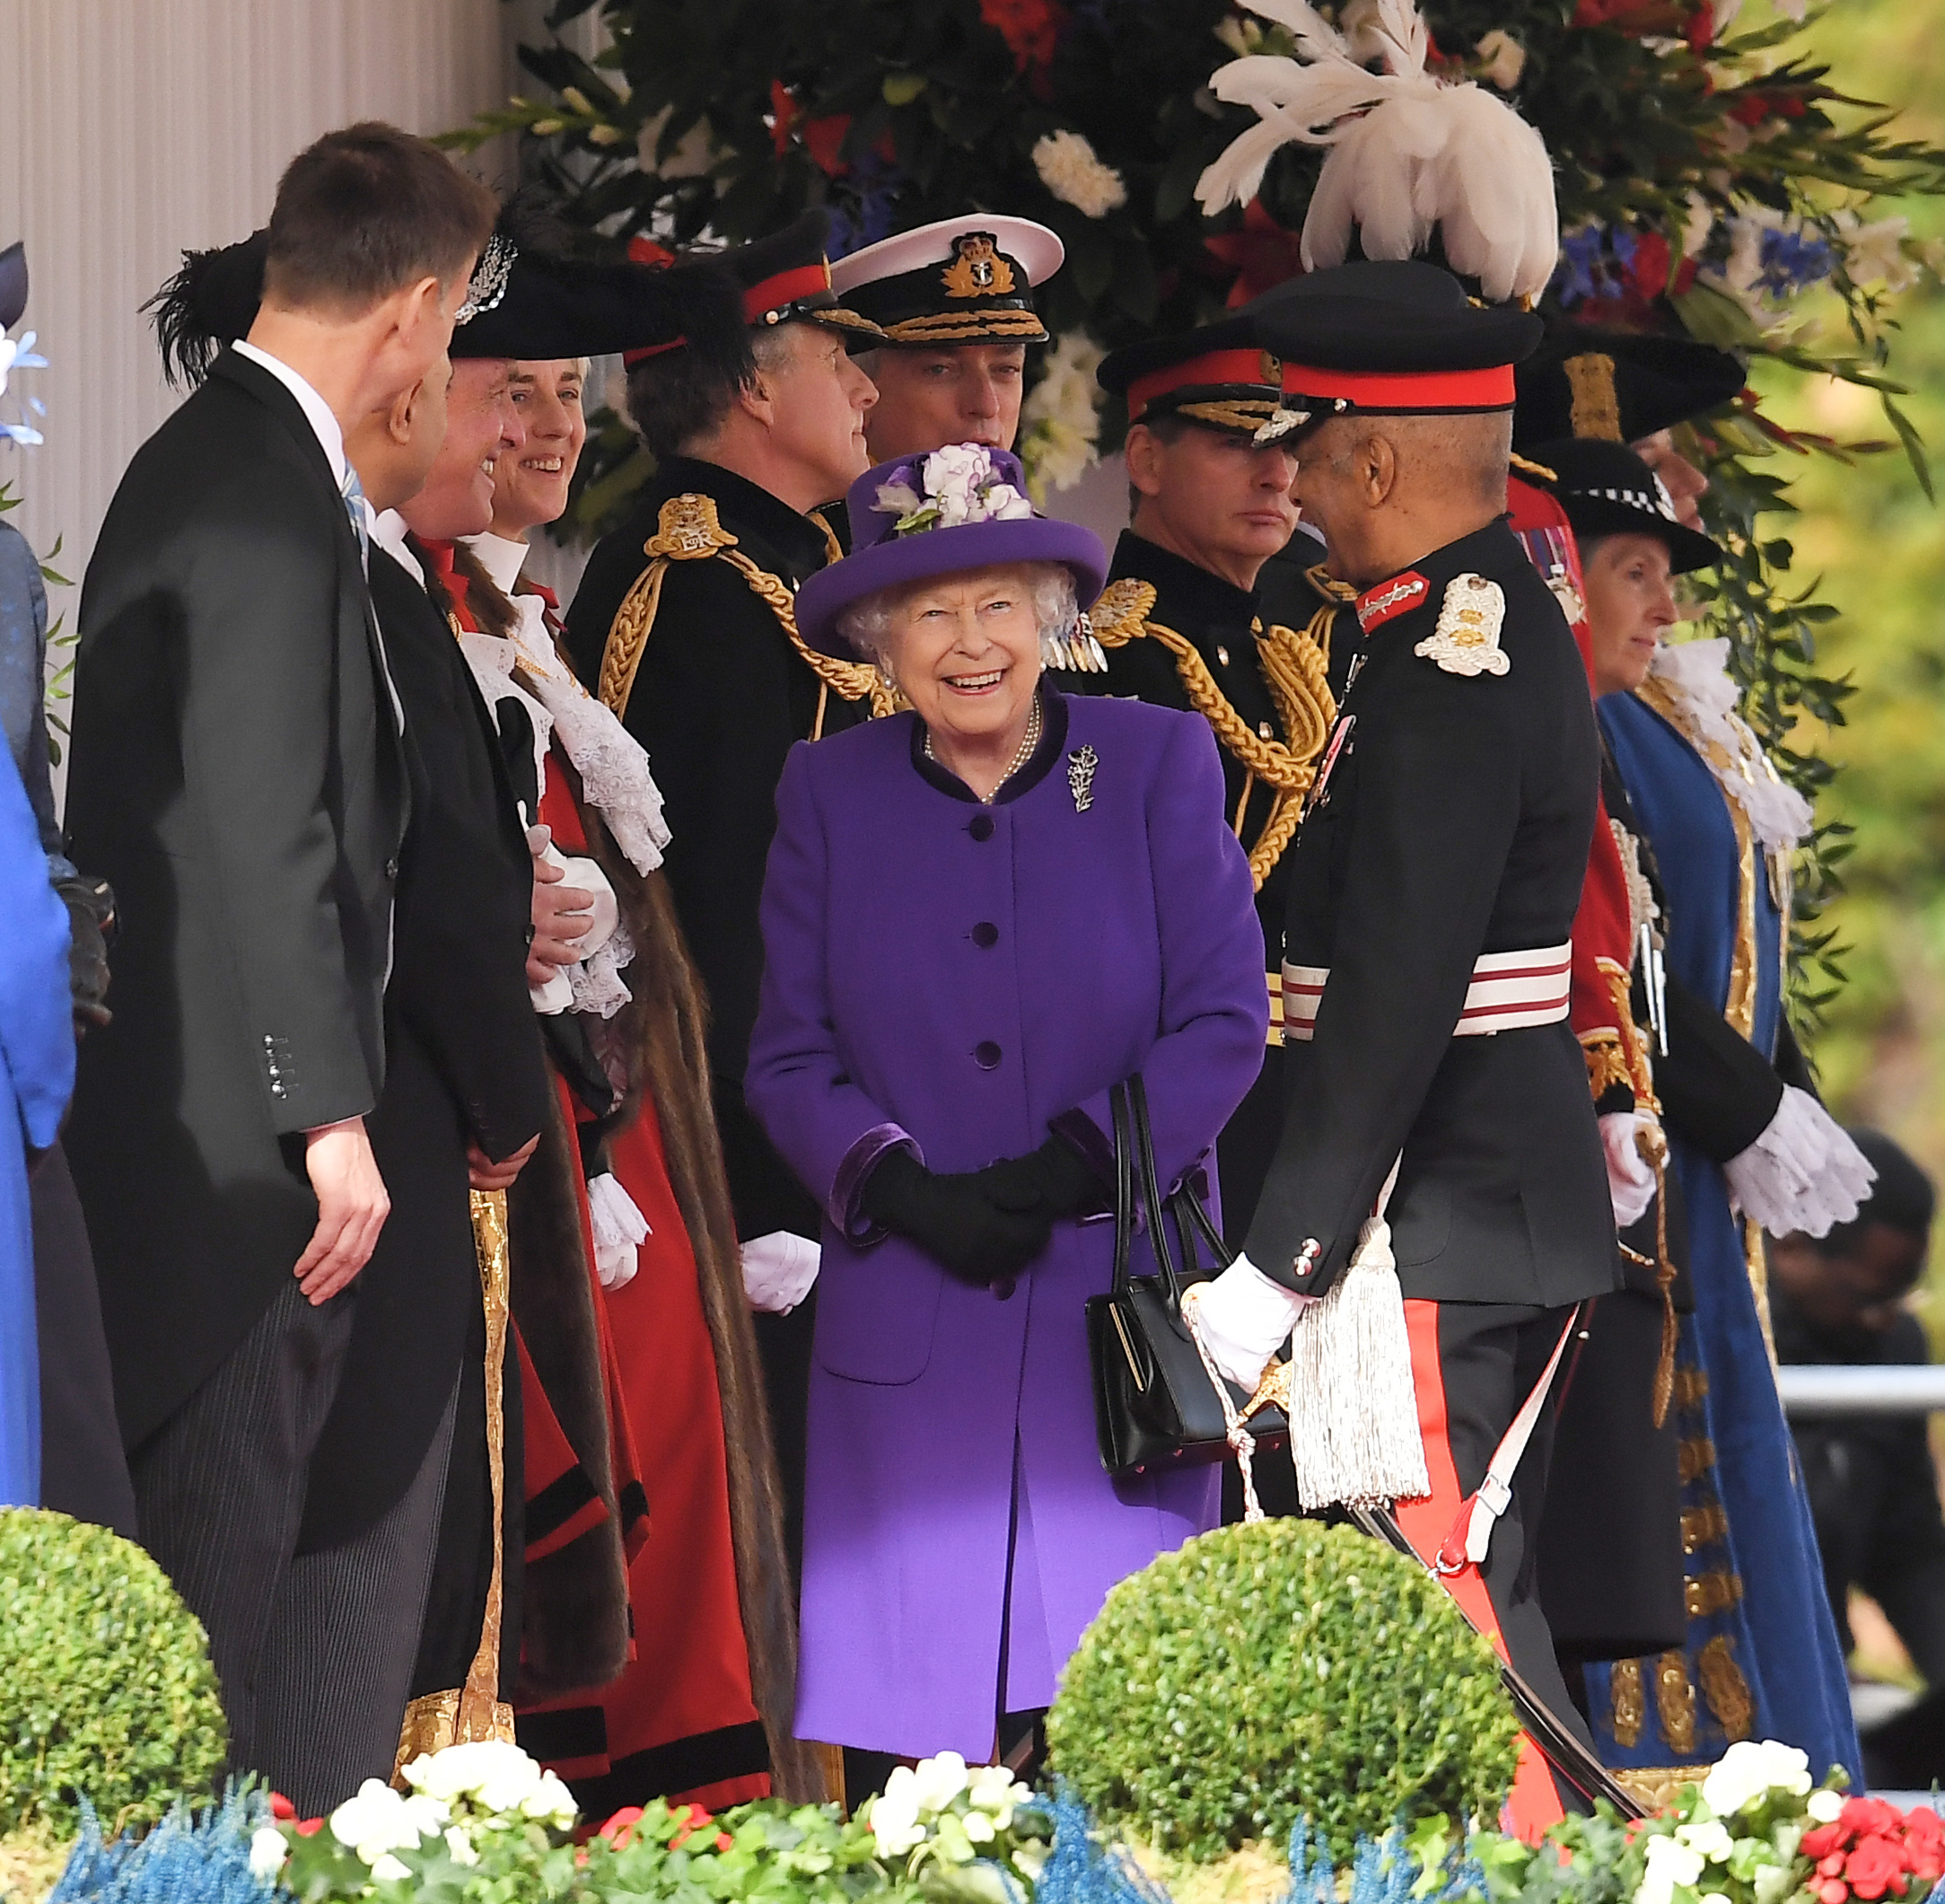 Jeremy Hunt and Queen Elizabeth II - Ceremonial Welcome at Horse Guards Parade